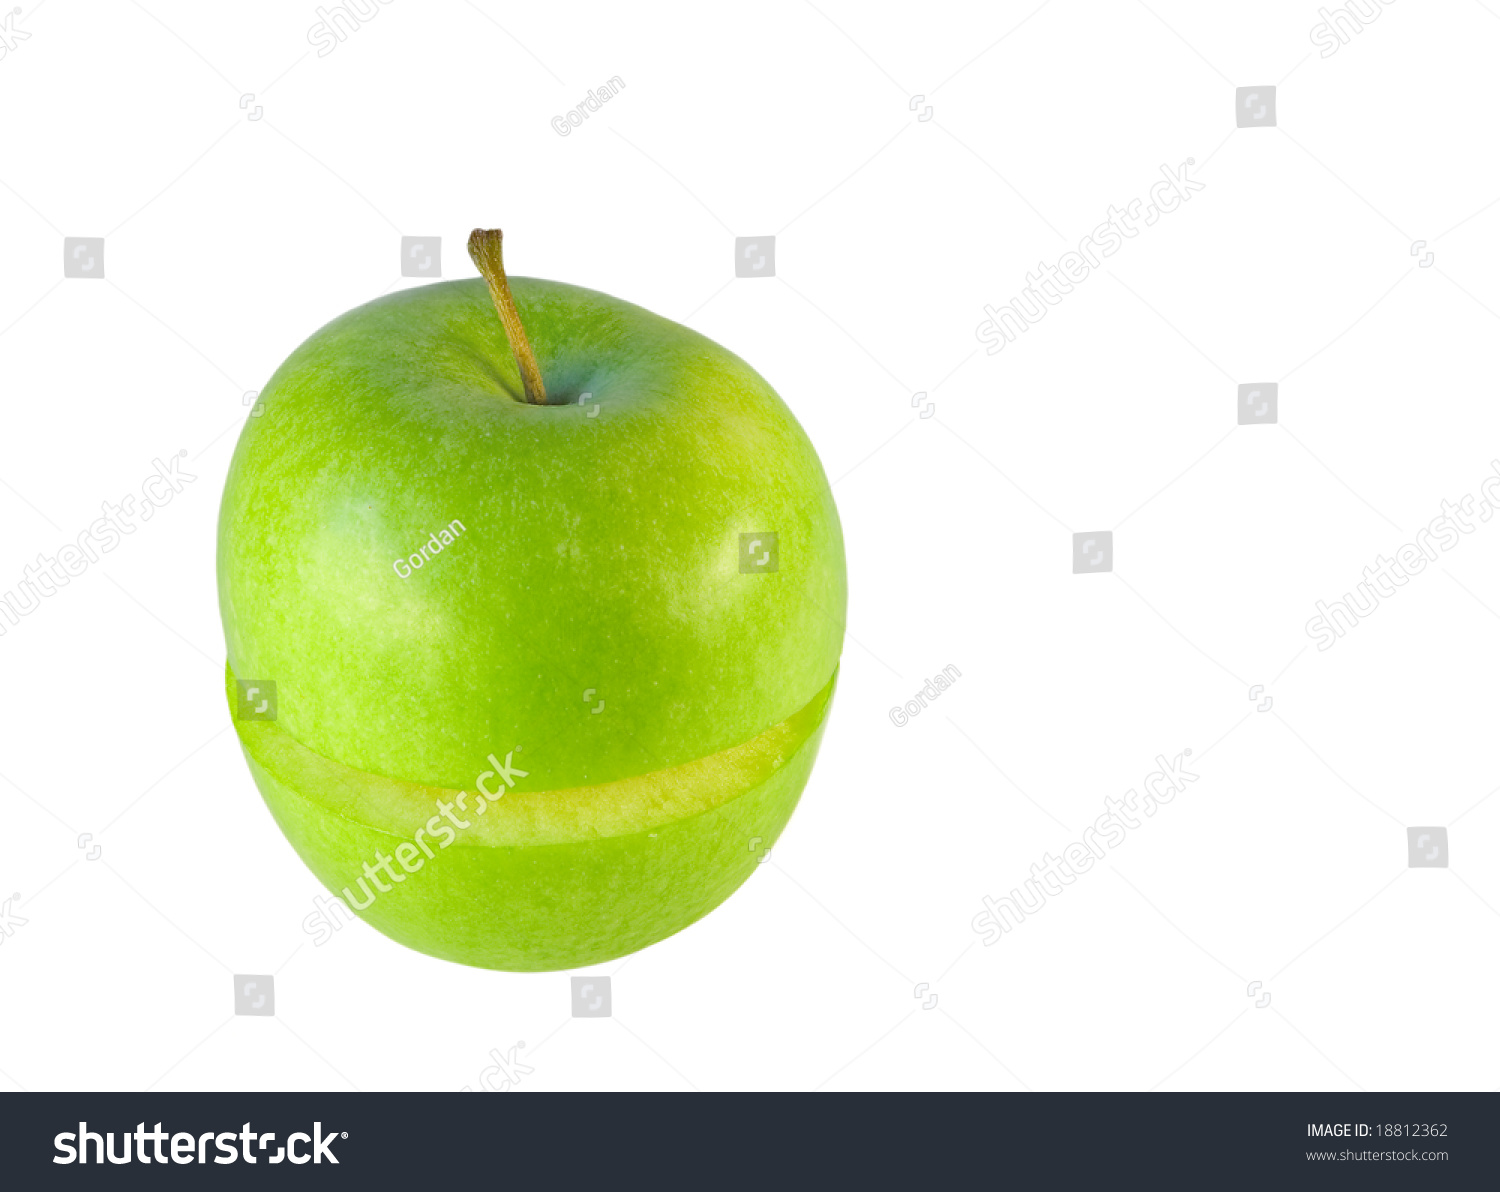 delicious green apple illustration - photo #43